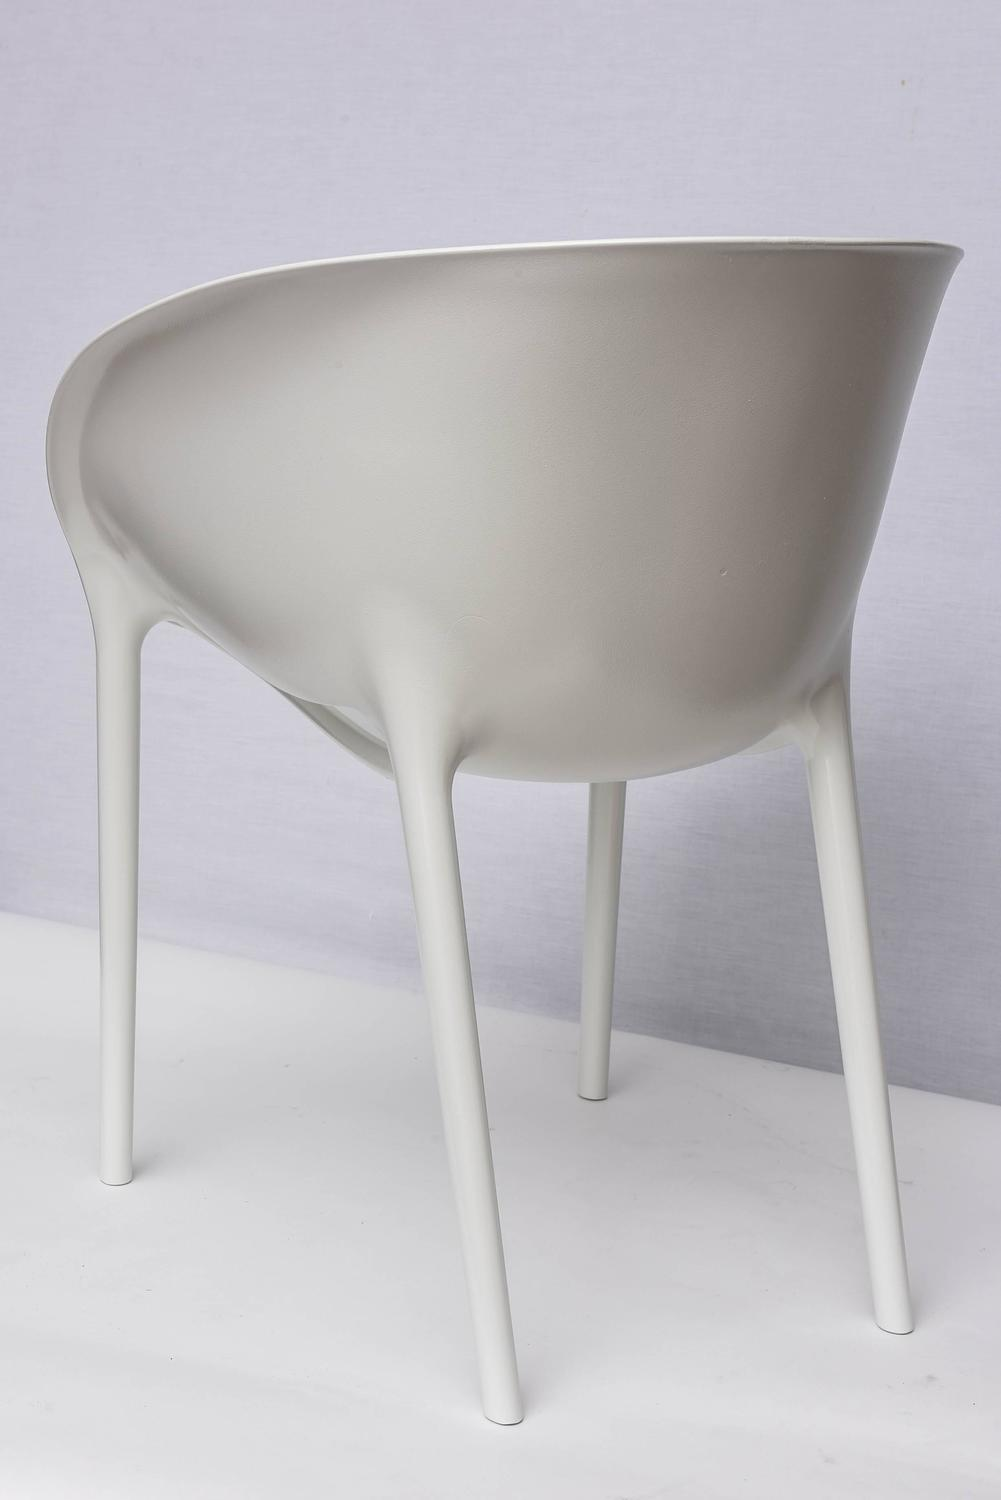 Soft Egg Chair By Philippe Starck Italy 20th Century At